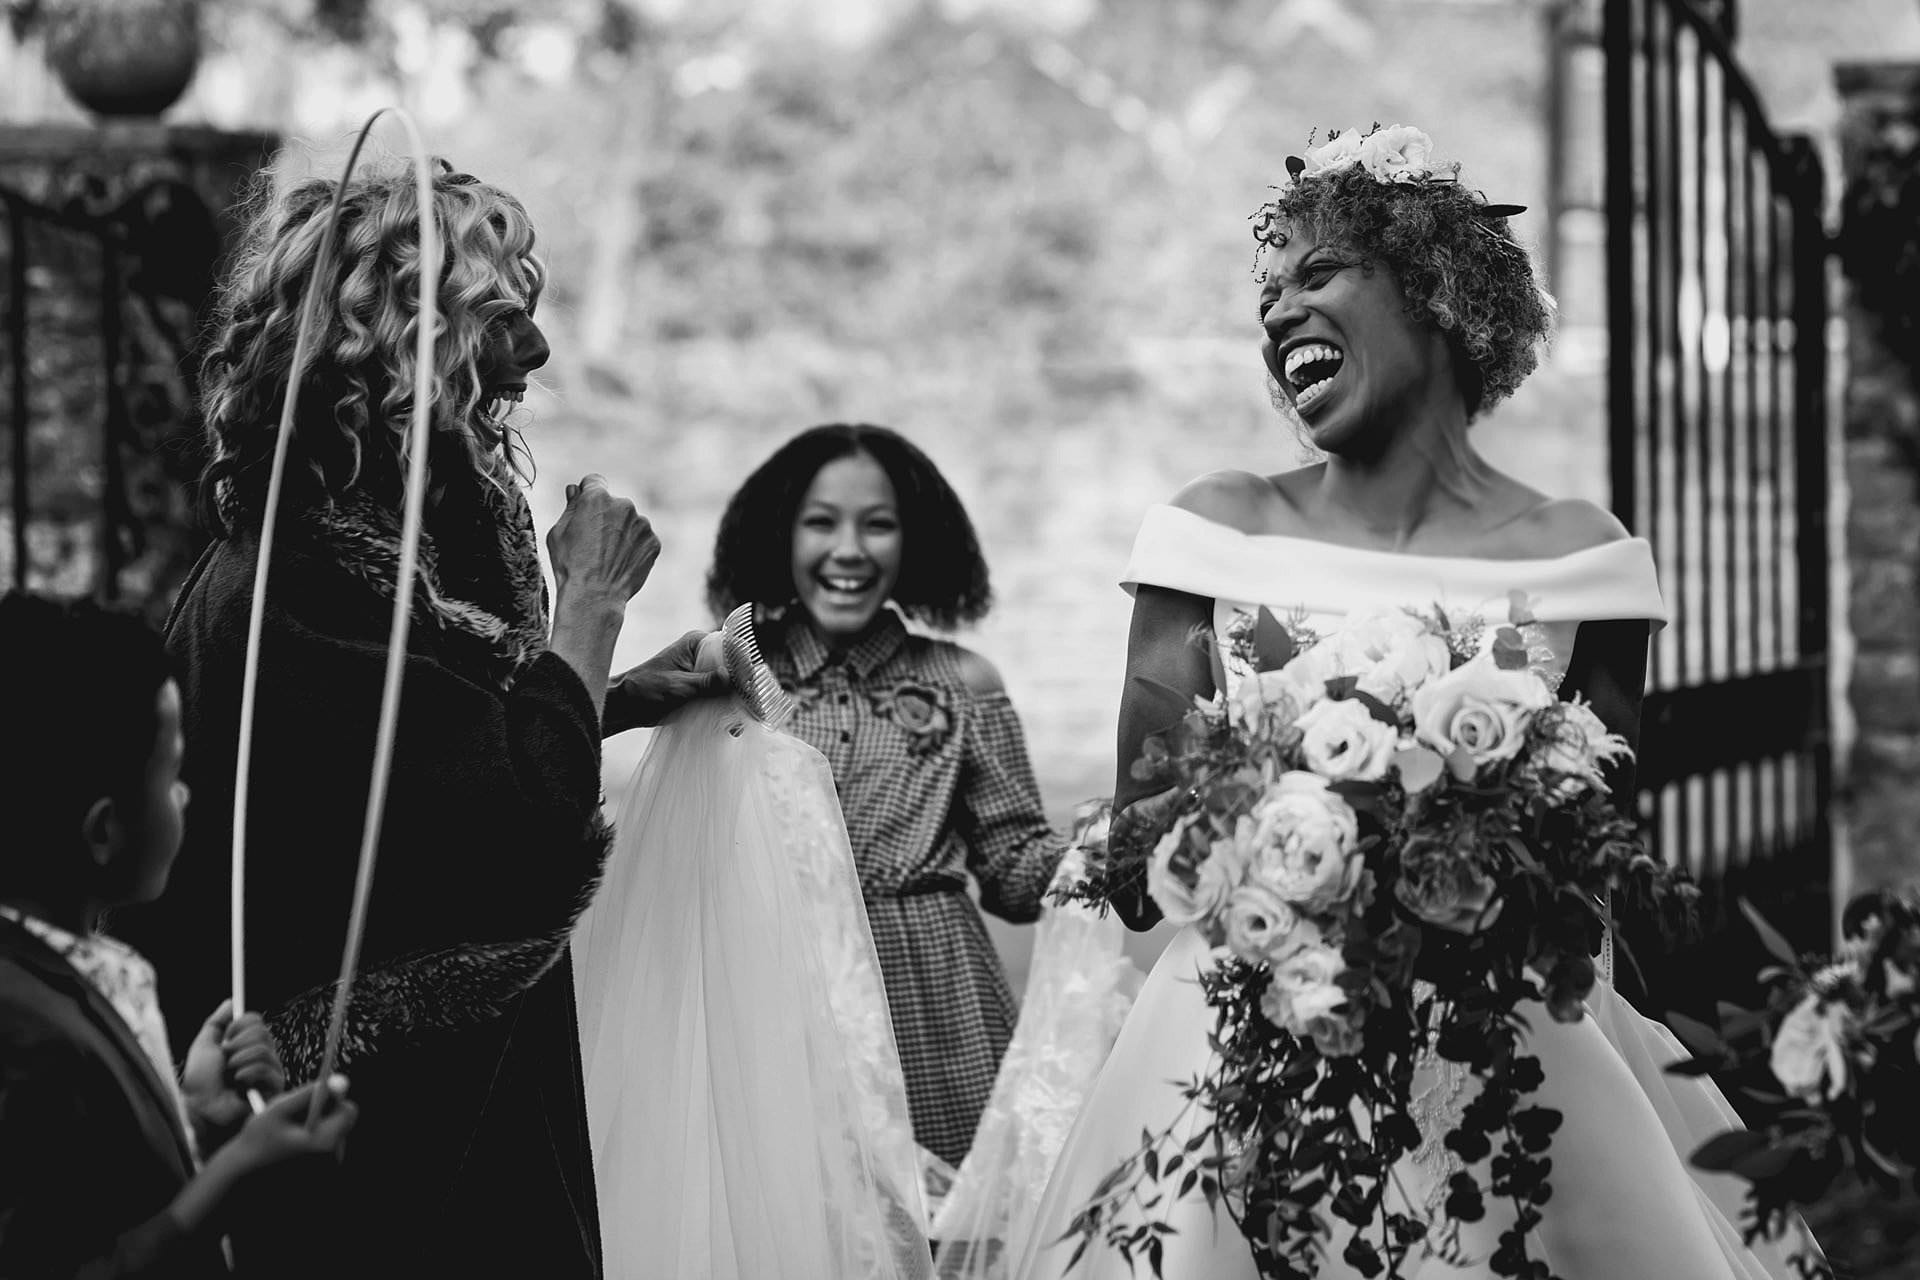 Bride laughing as she loses her hoop from her wedding dress